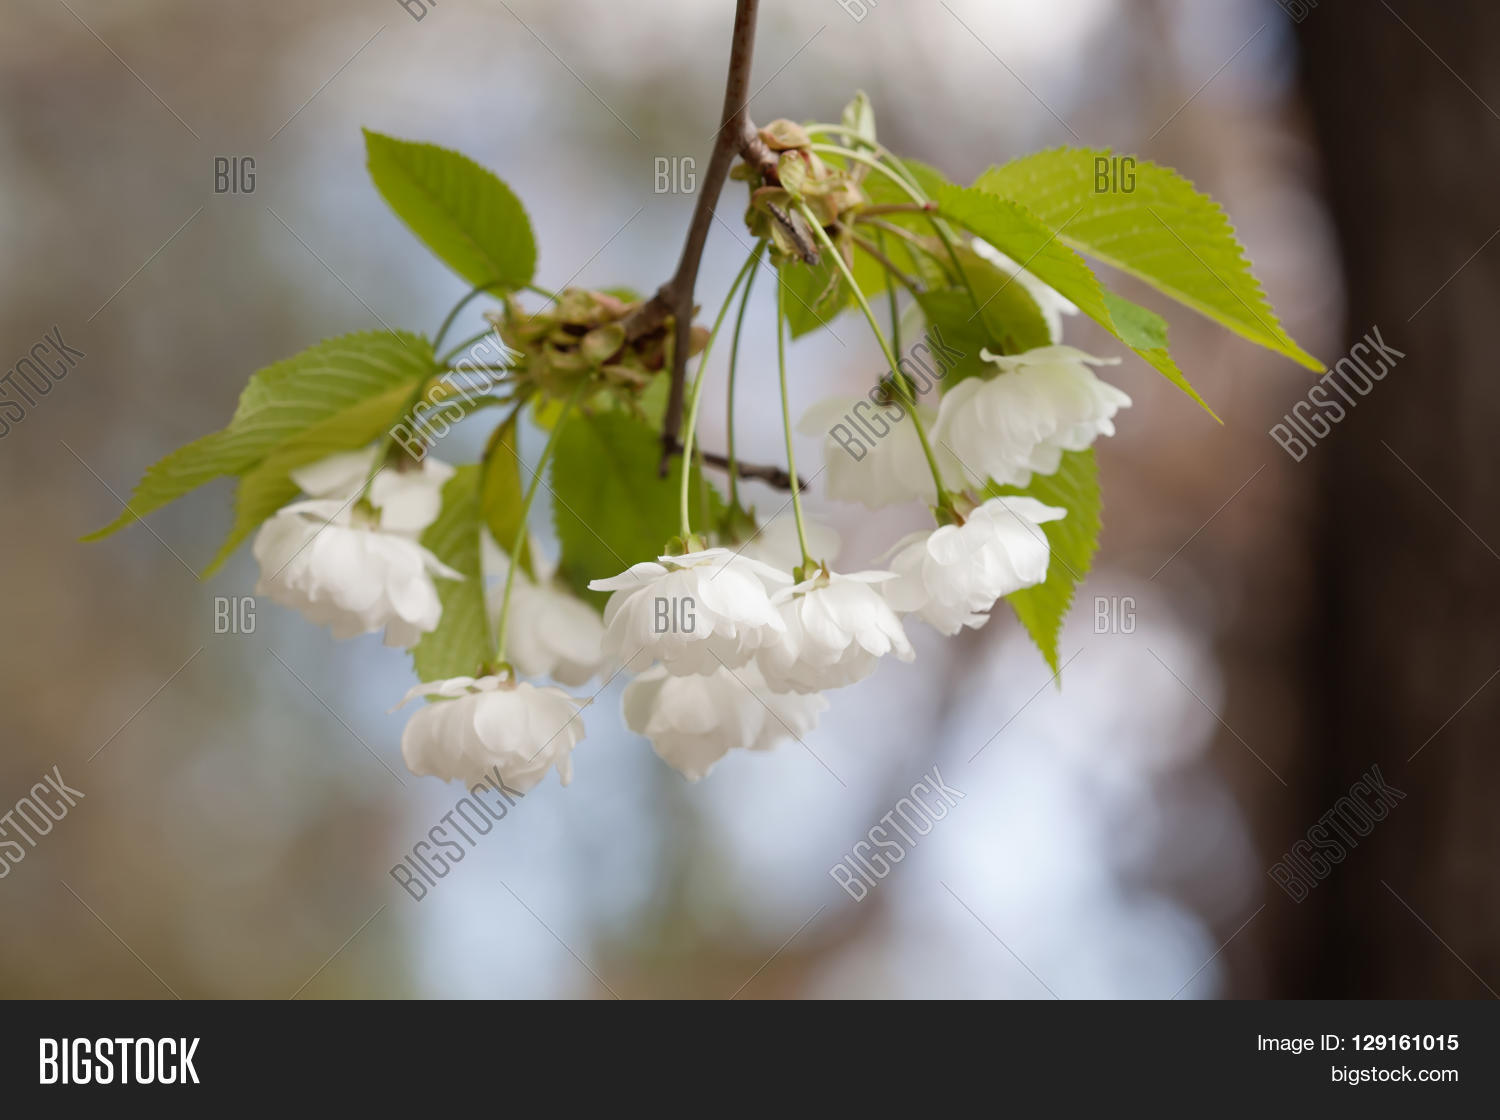 Crabapple Tree Flowers Image Photo Free Trial Bigstock